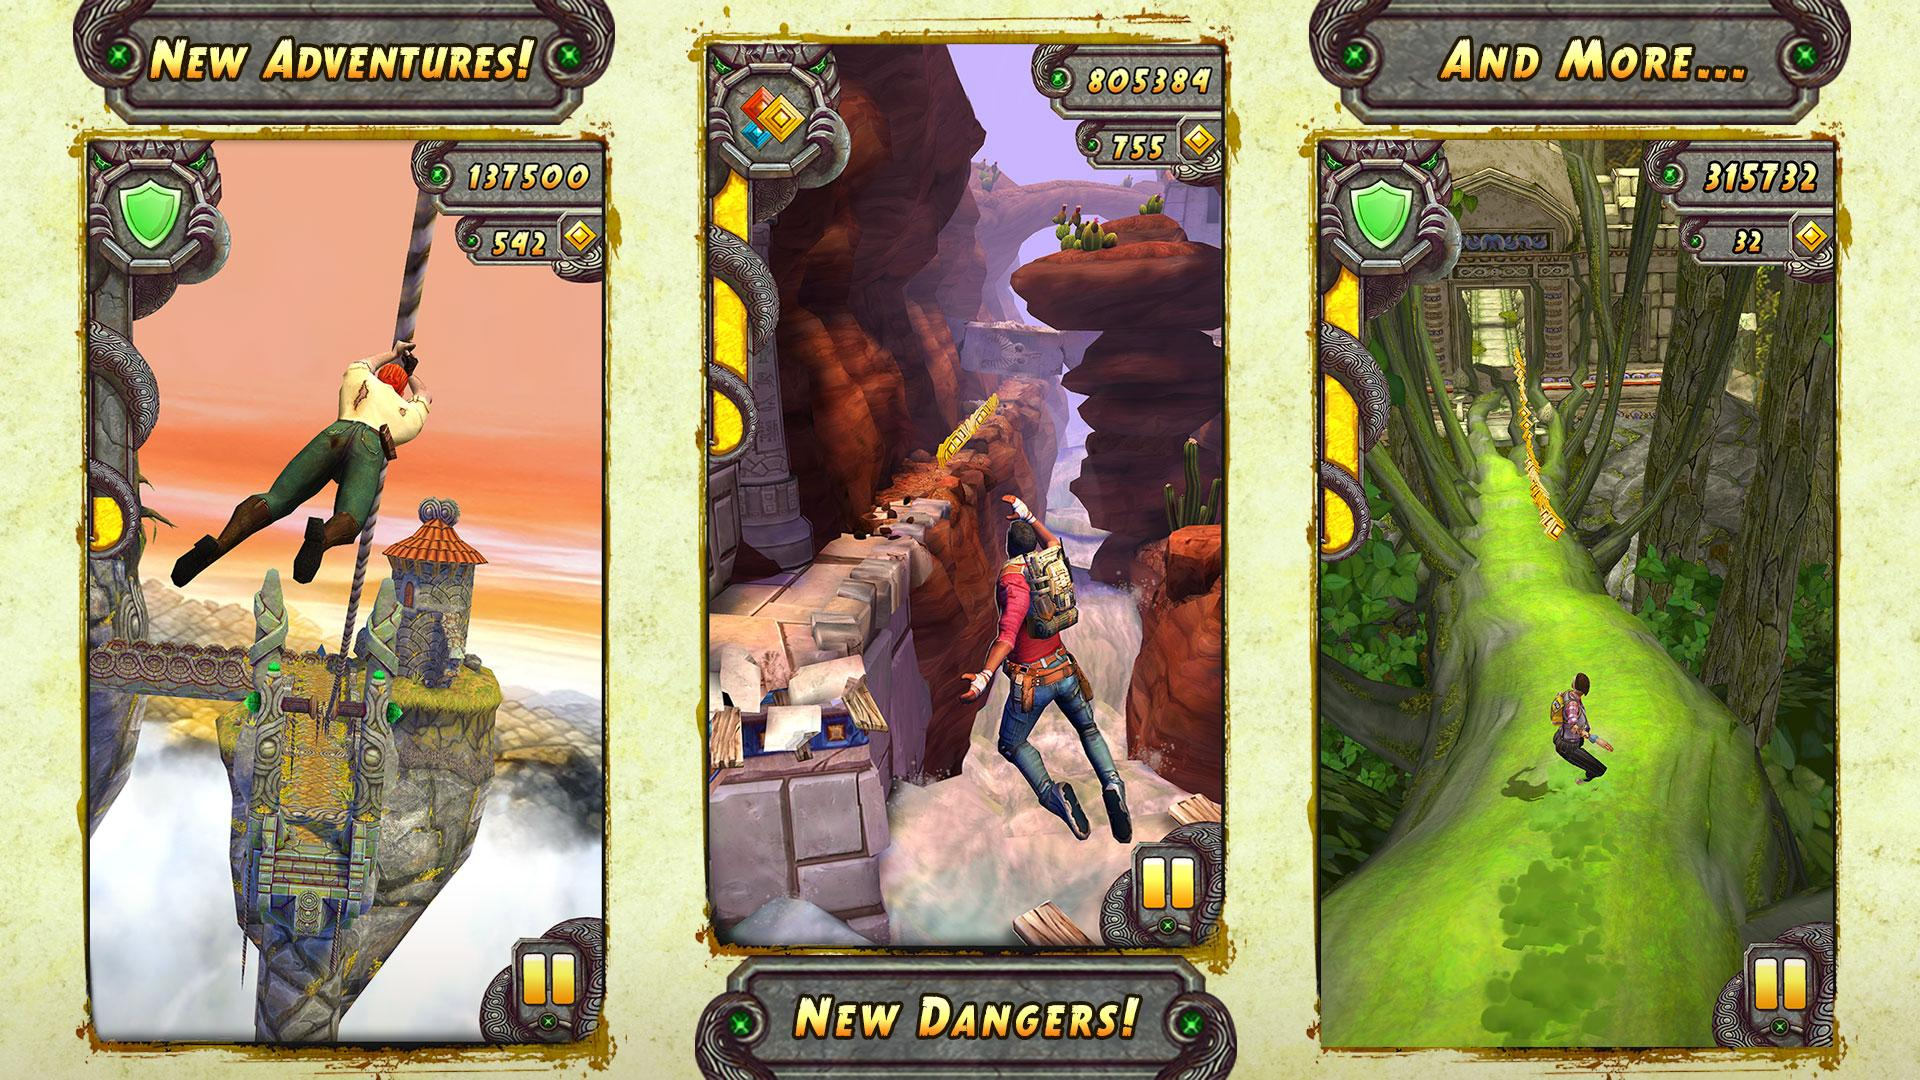 Temple Run 2 Apk Download Free Action Game For Android Apkpure Com